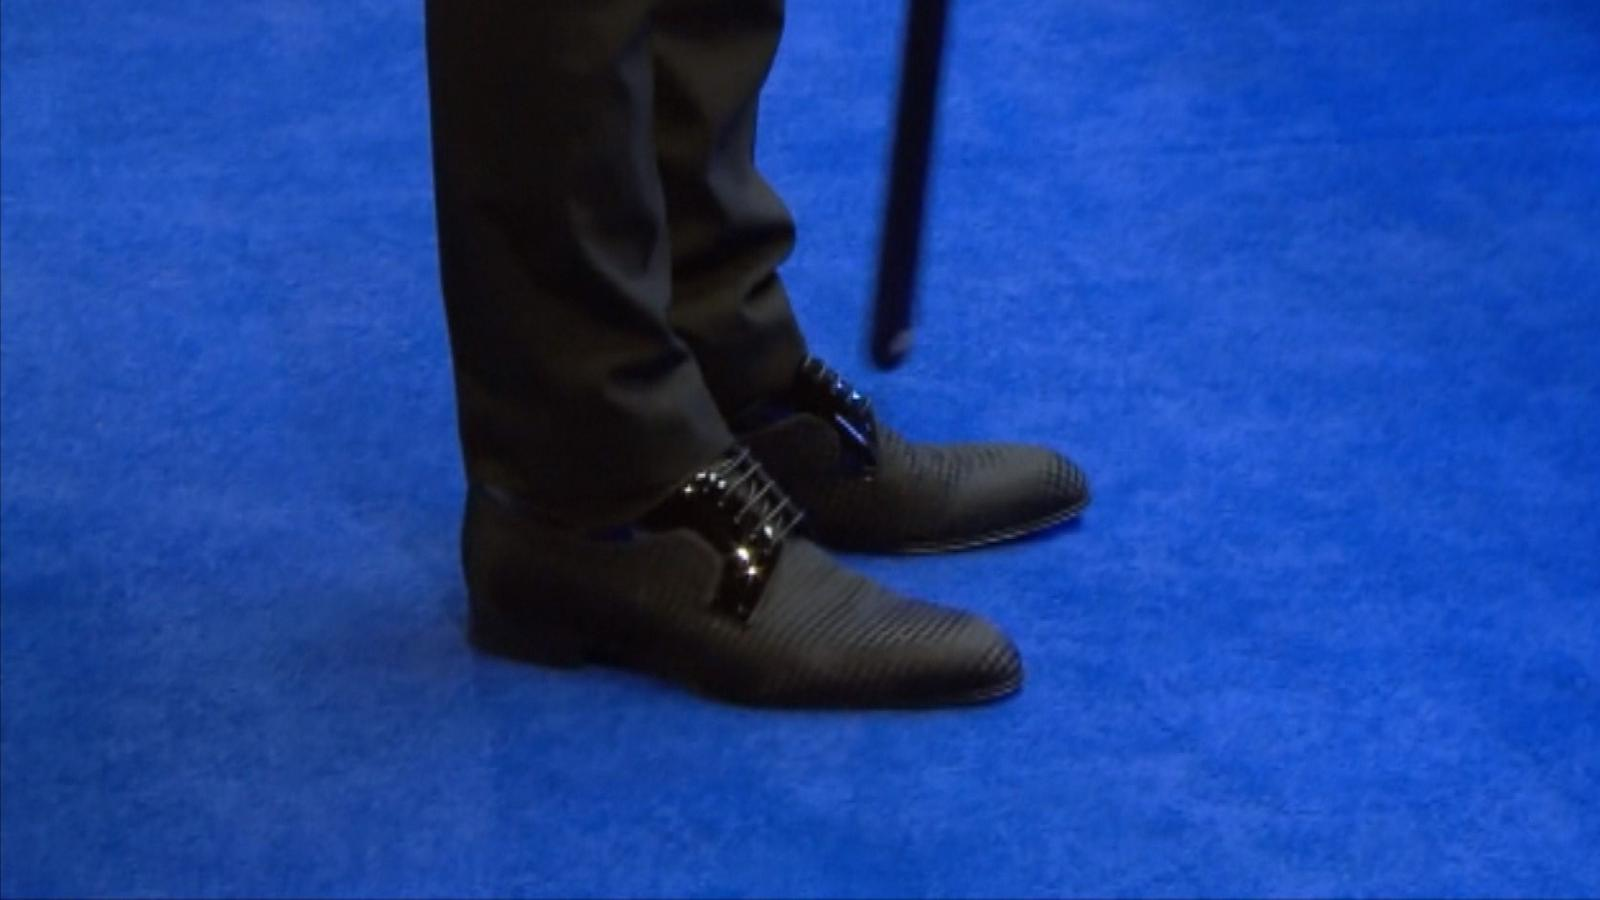 VIDEO - Judd Trump shows off his new shoes - Video Eurosport British